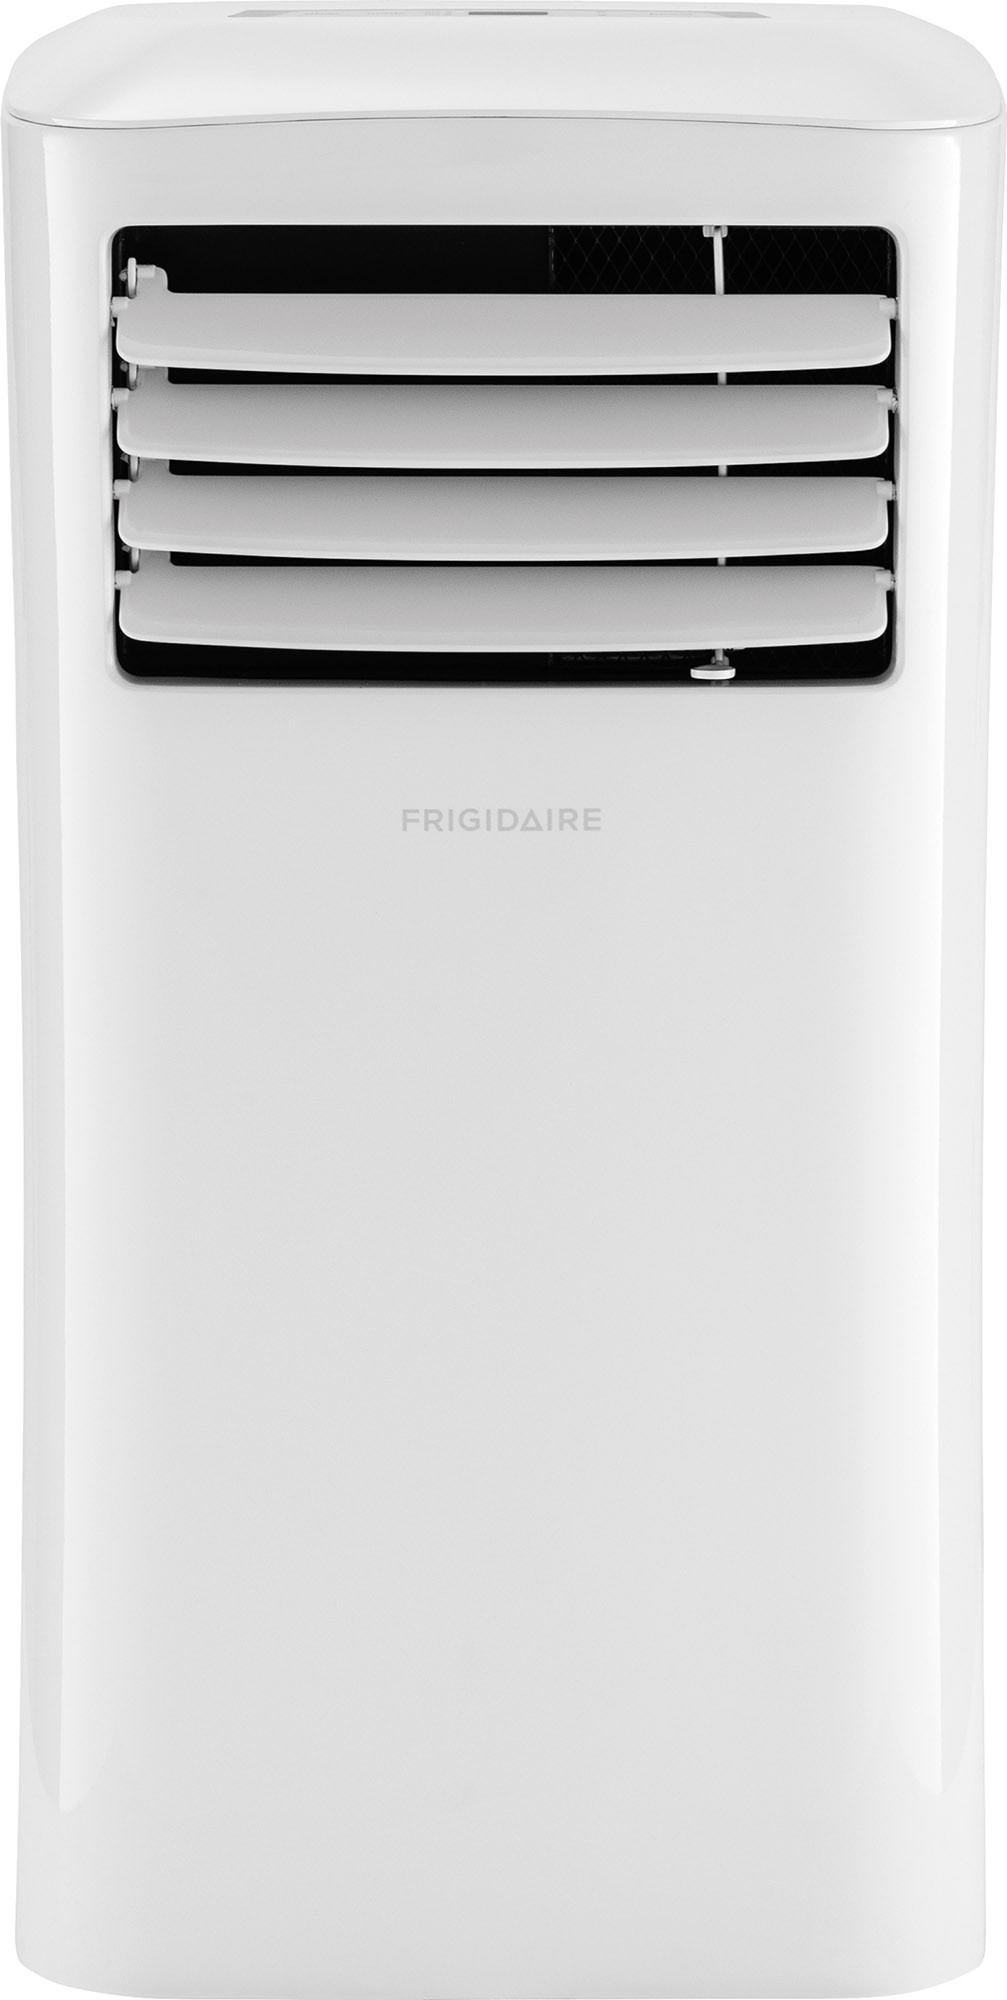 Residential Portable Air Conditioners Portable Home Air Conditioners